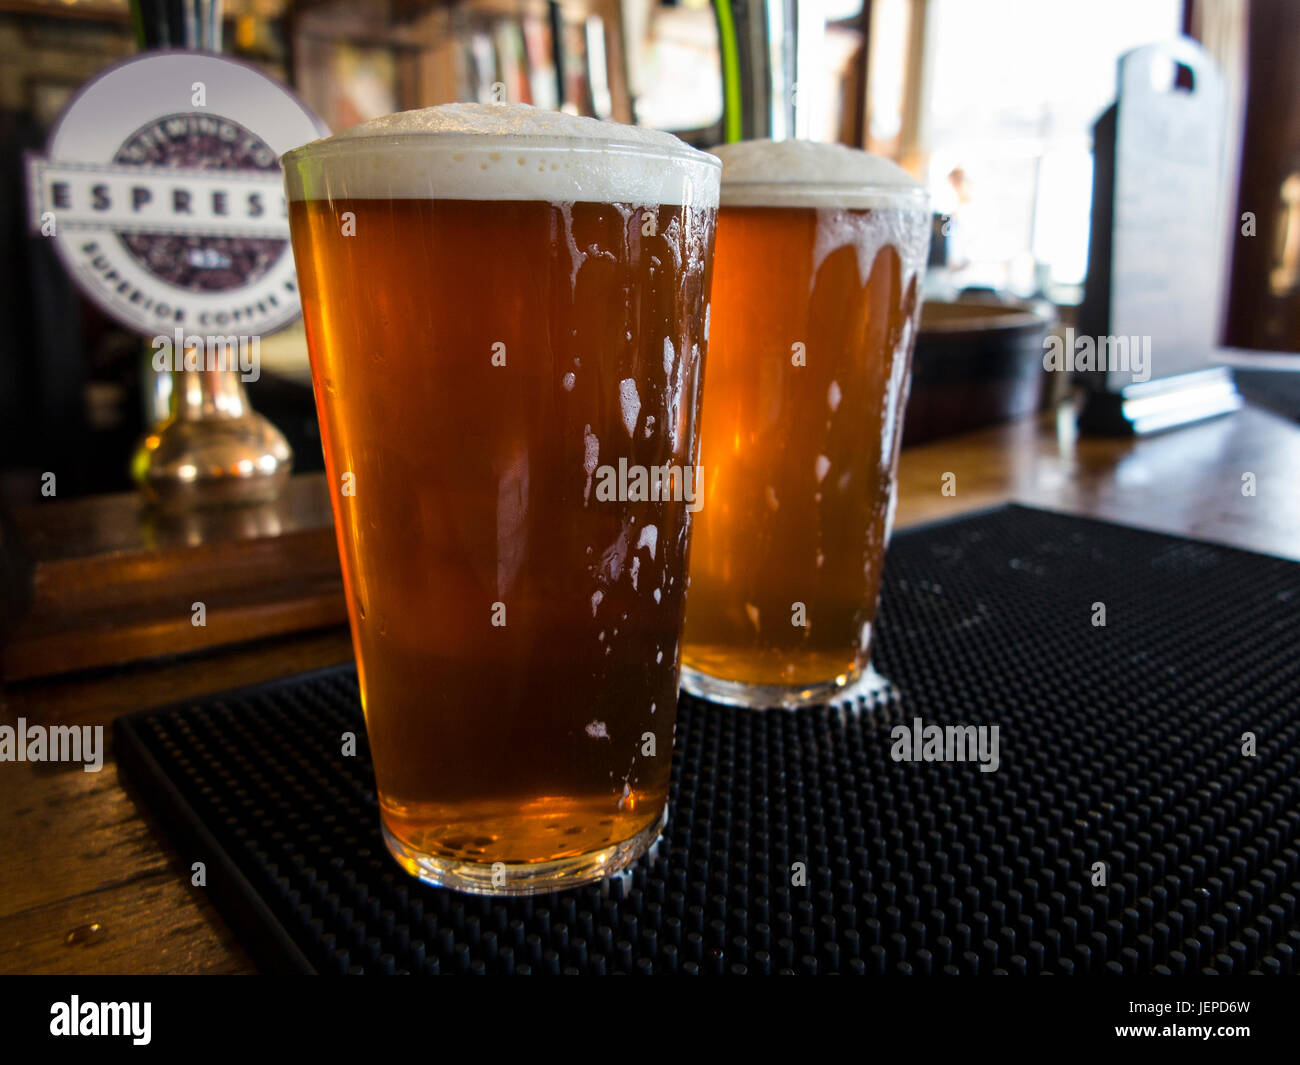 TWO PINTS OF BITTER AWAIT DRINKING IN A LONDON PUB Stock Photo